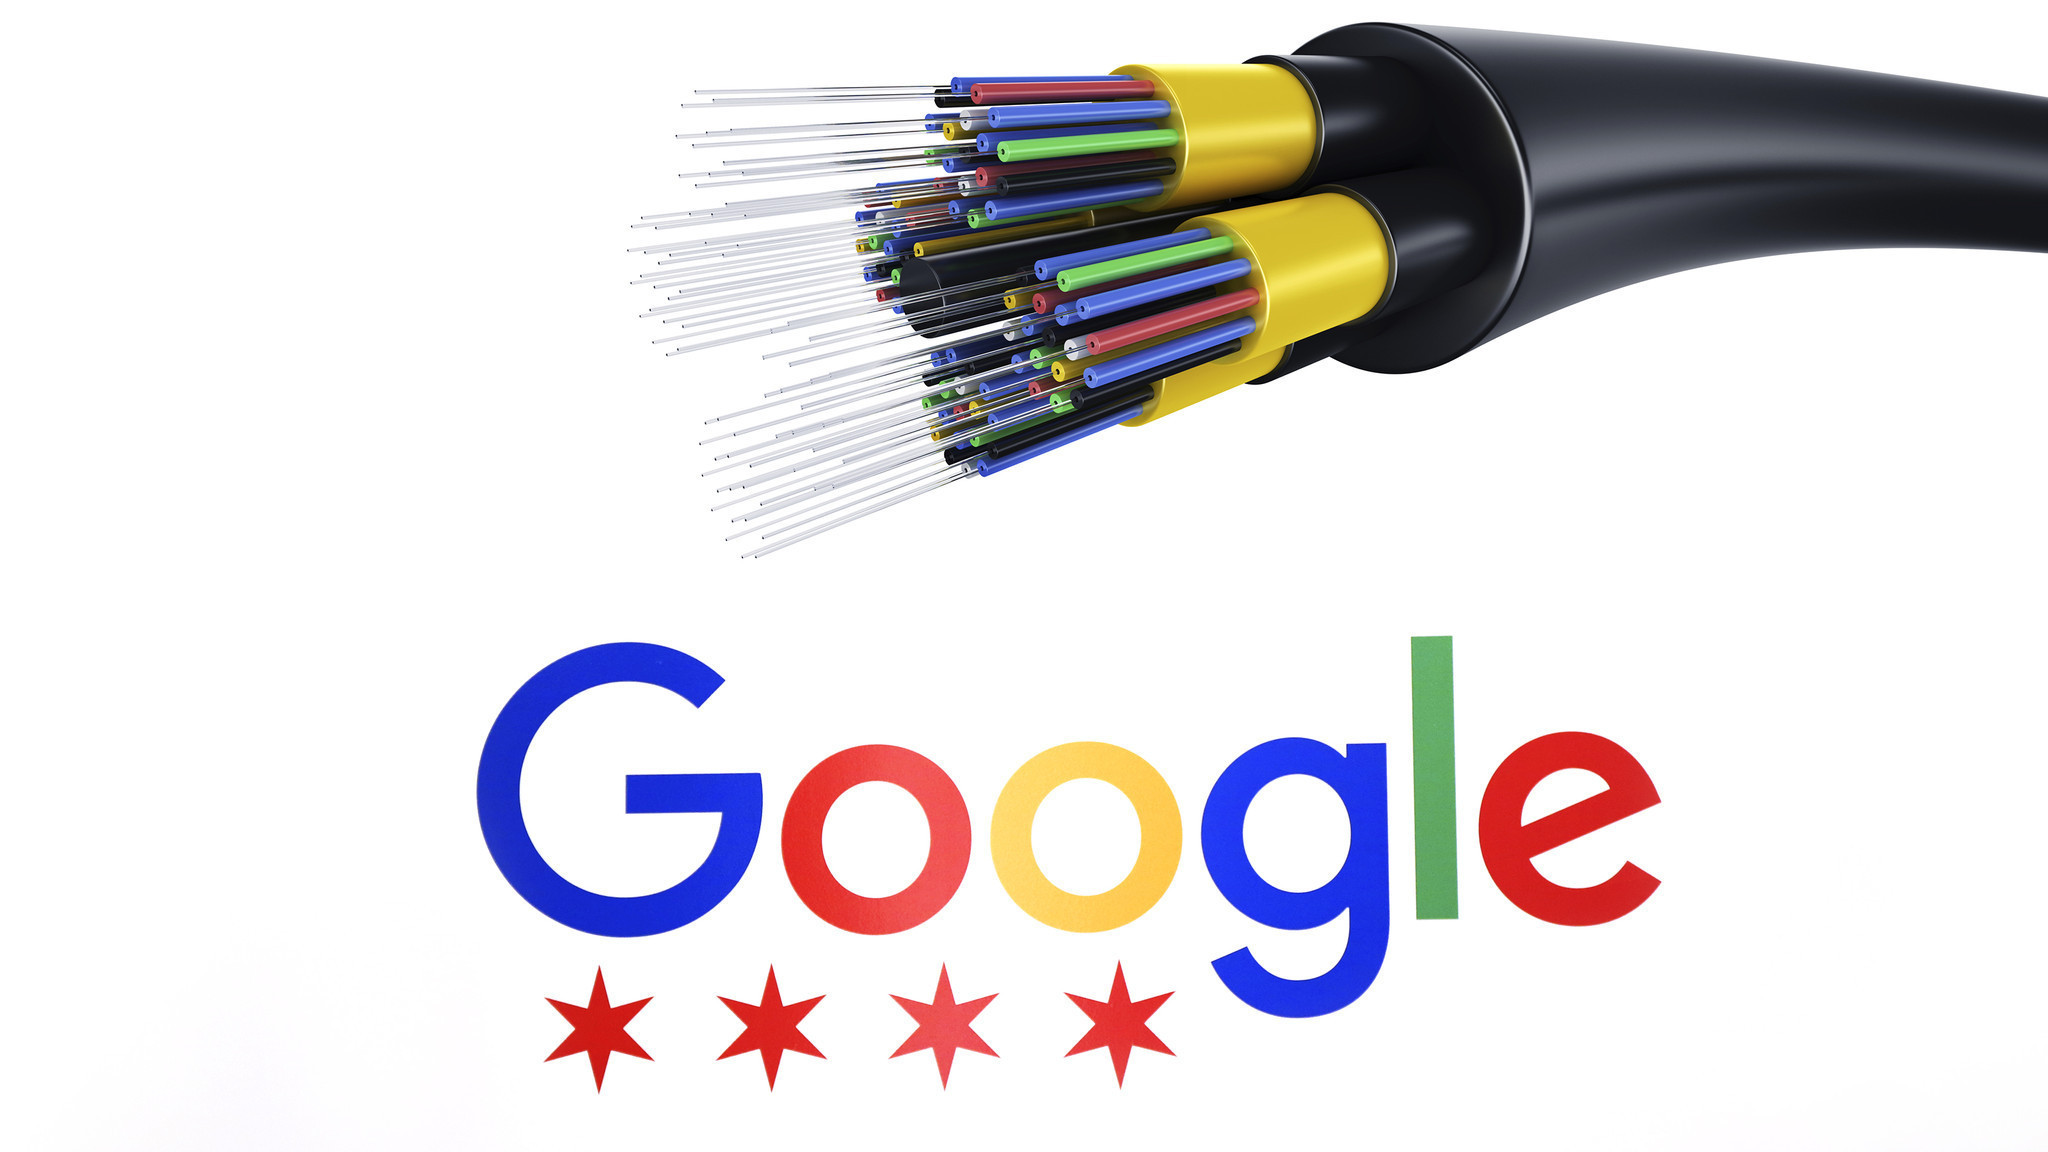 Google fiber adding phone service.